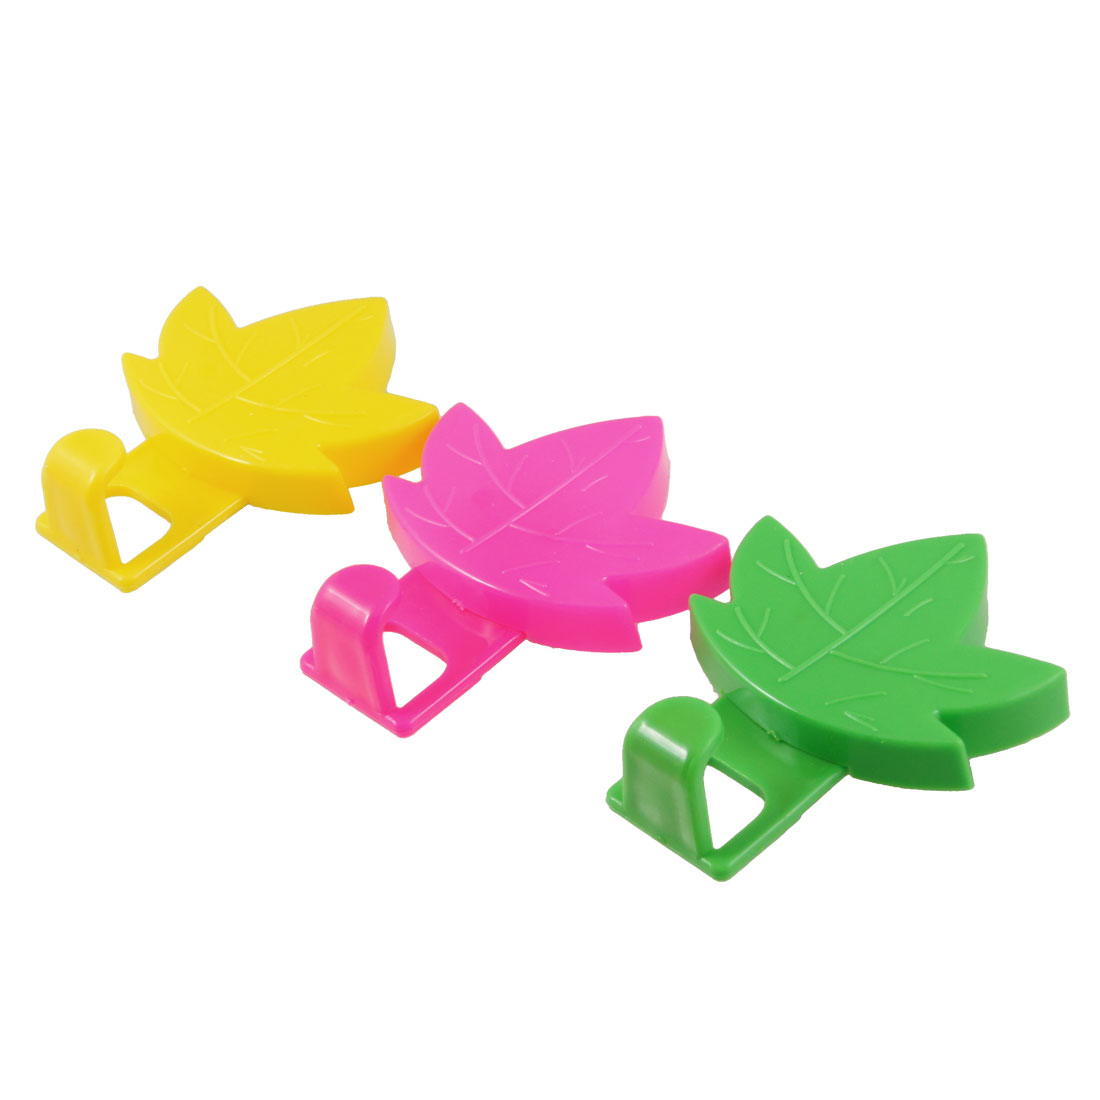 3 Pcs Hot Pink Green Yellow 2kg Load Plastic Sticky Leaf Hooks Hanger